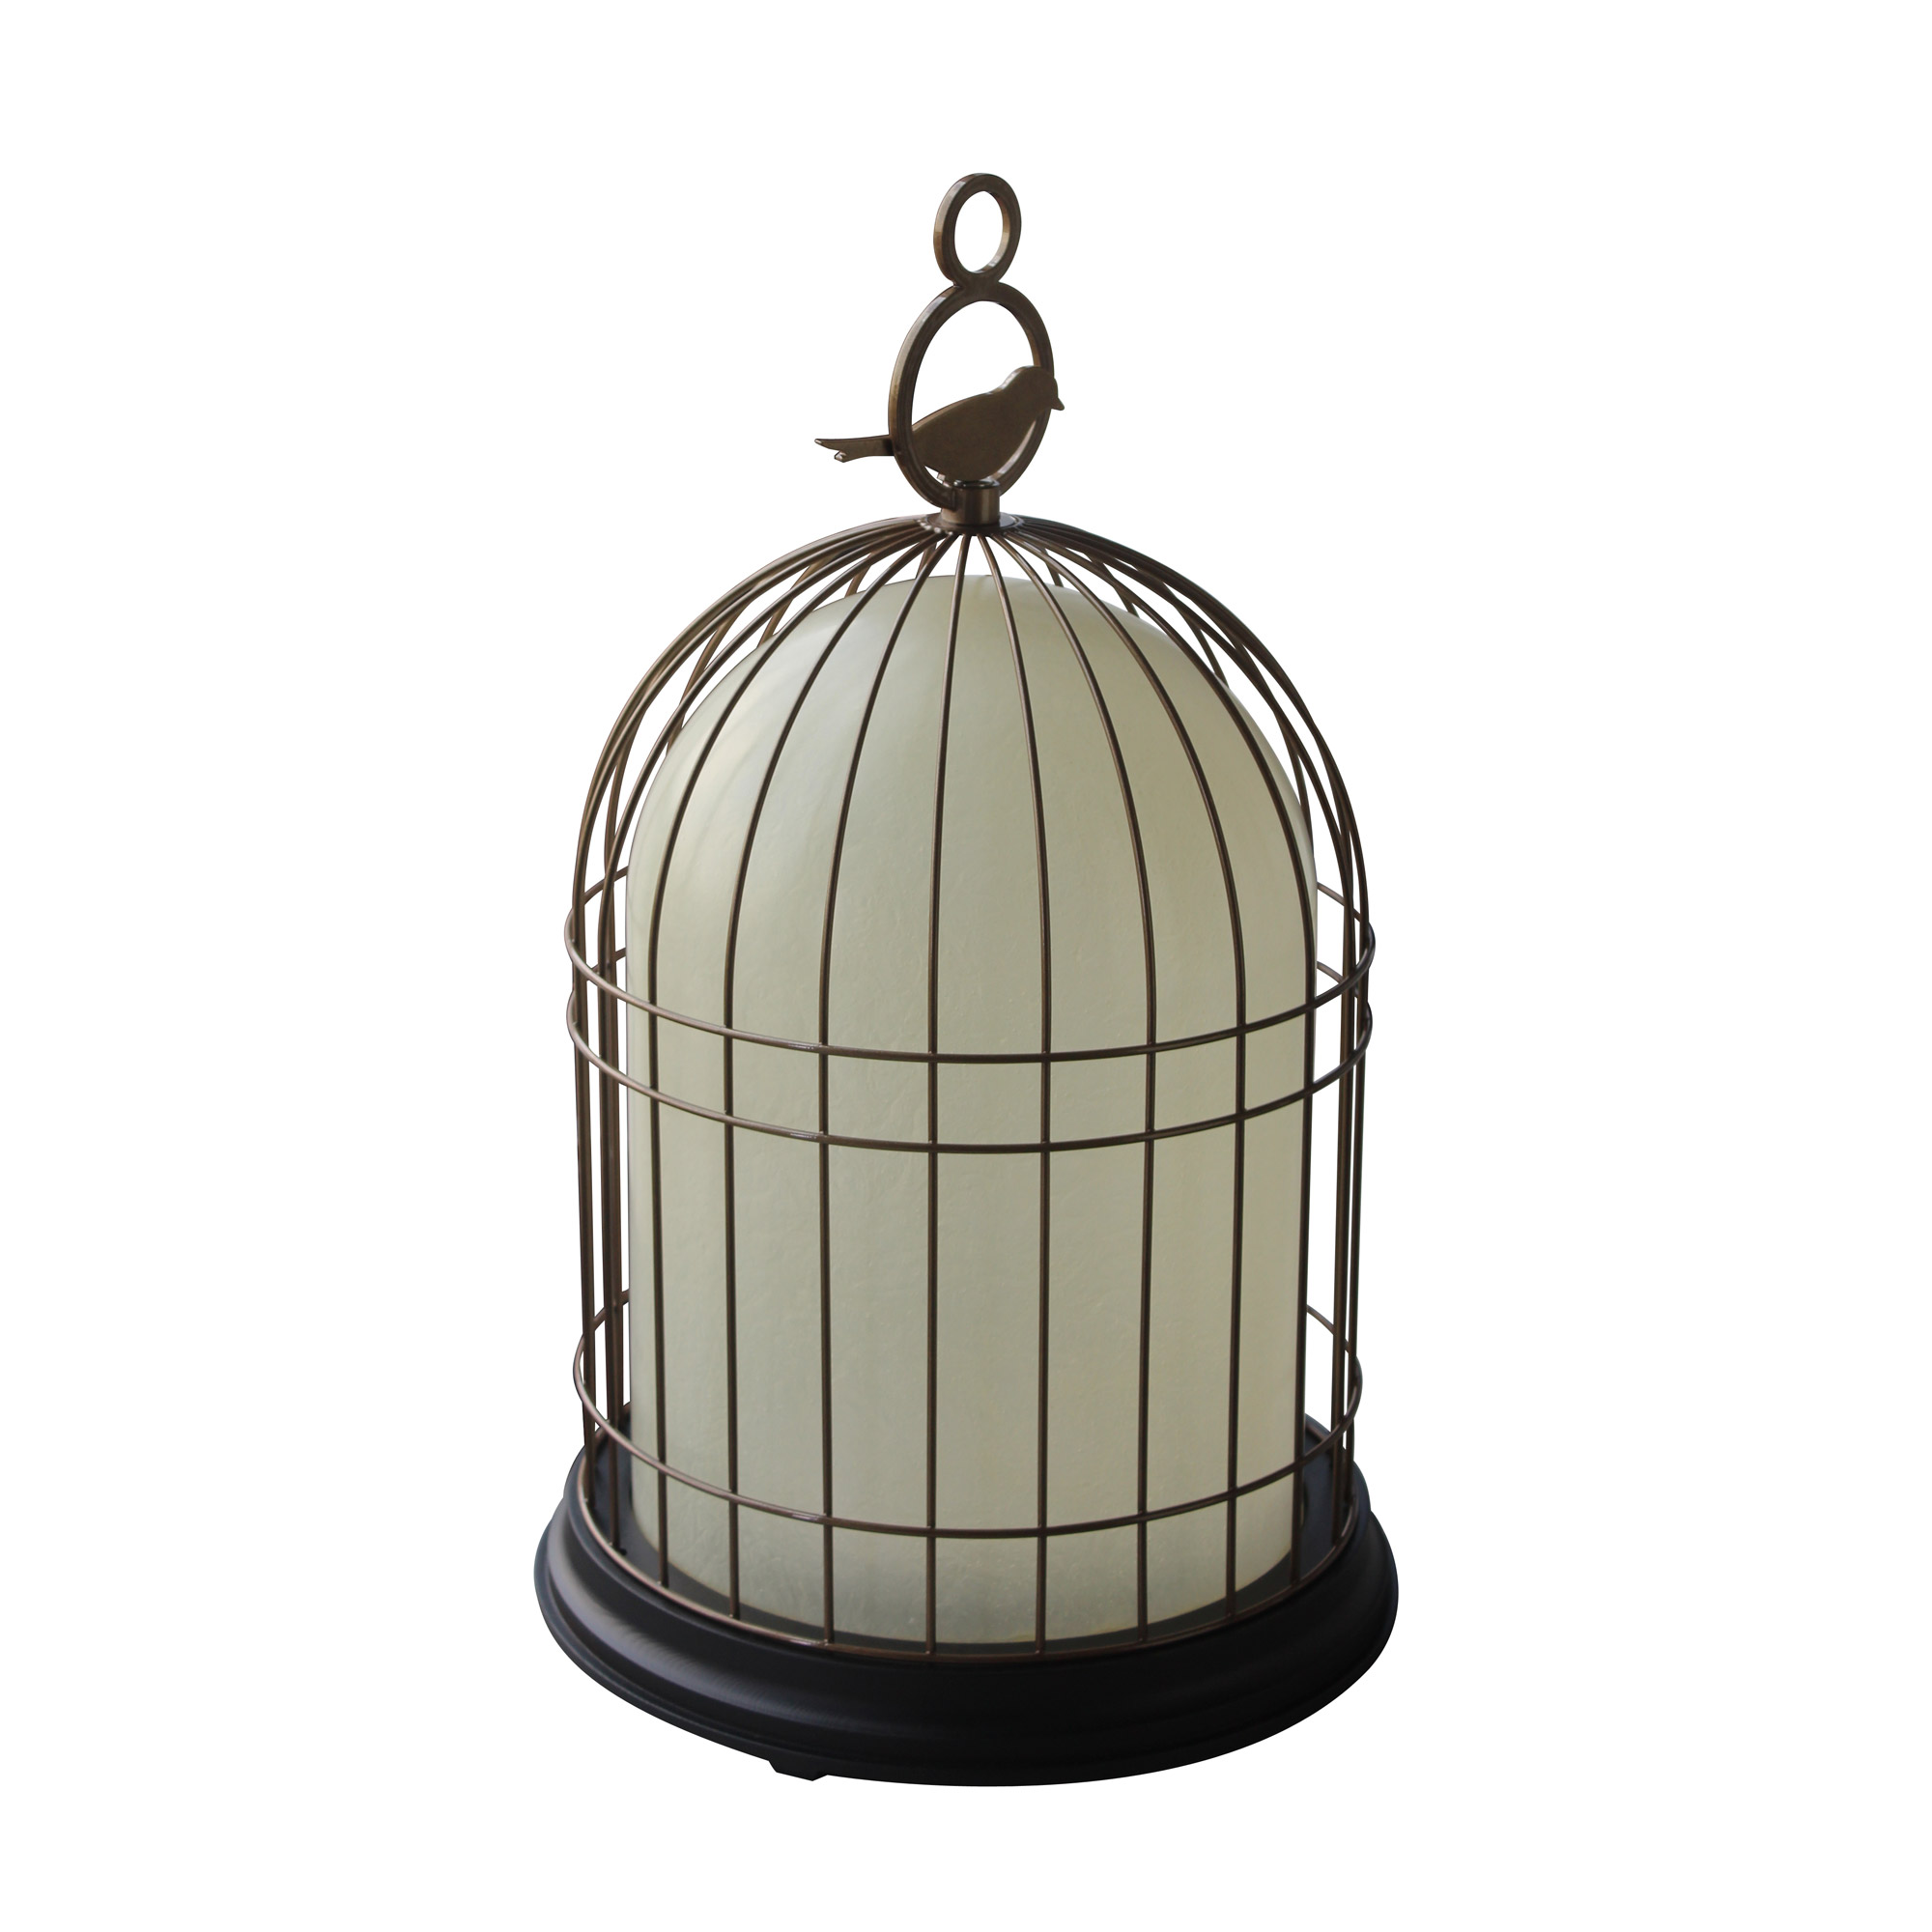 Freedom Outdoor Battery Operated Table Lamp By Contardi Acam 001710